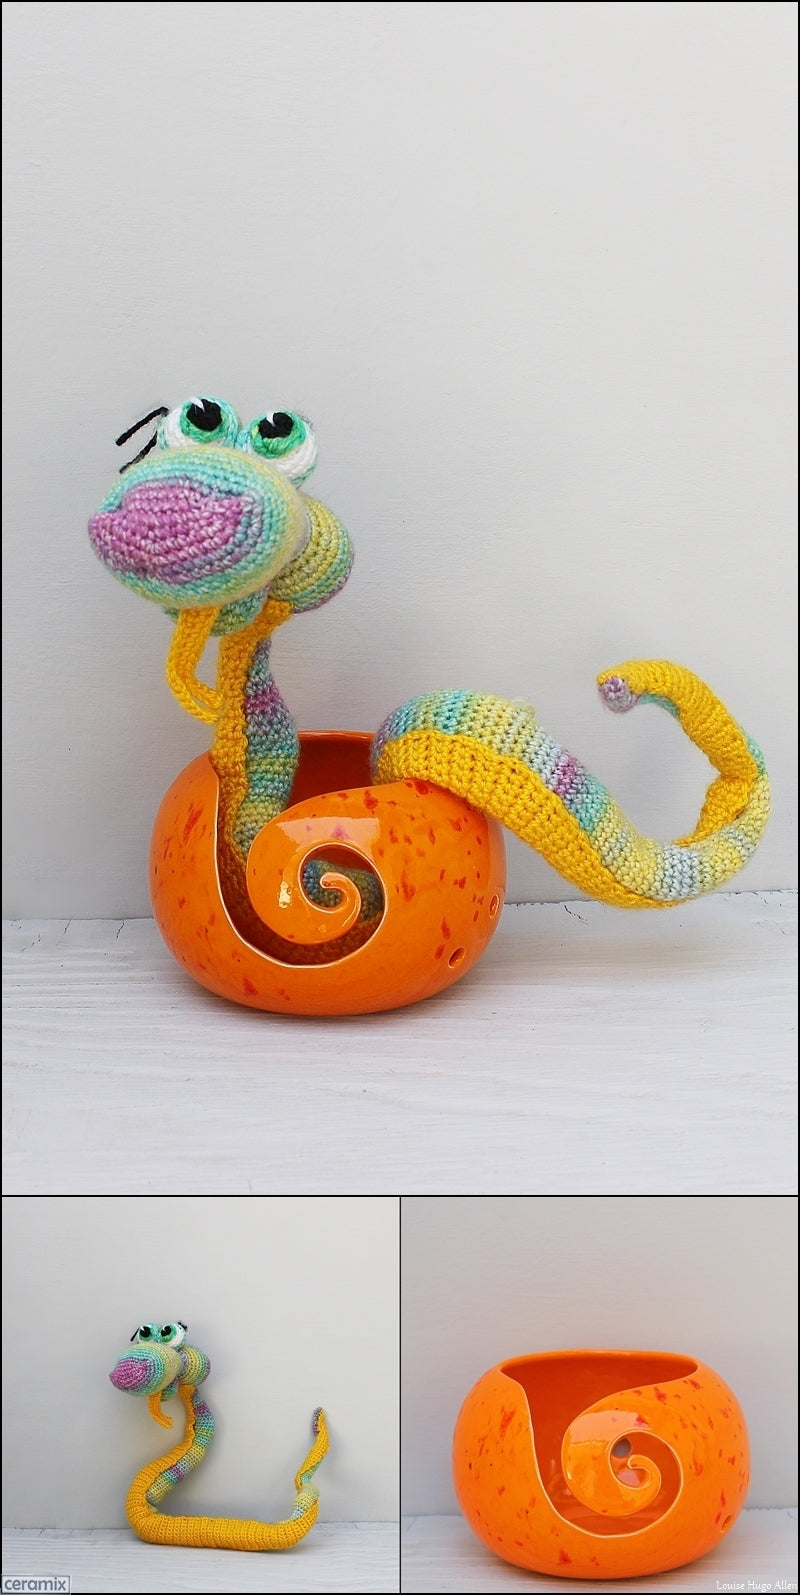 Sammy Snake soft toy & yarn bowl handmade in South Africa